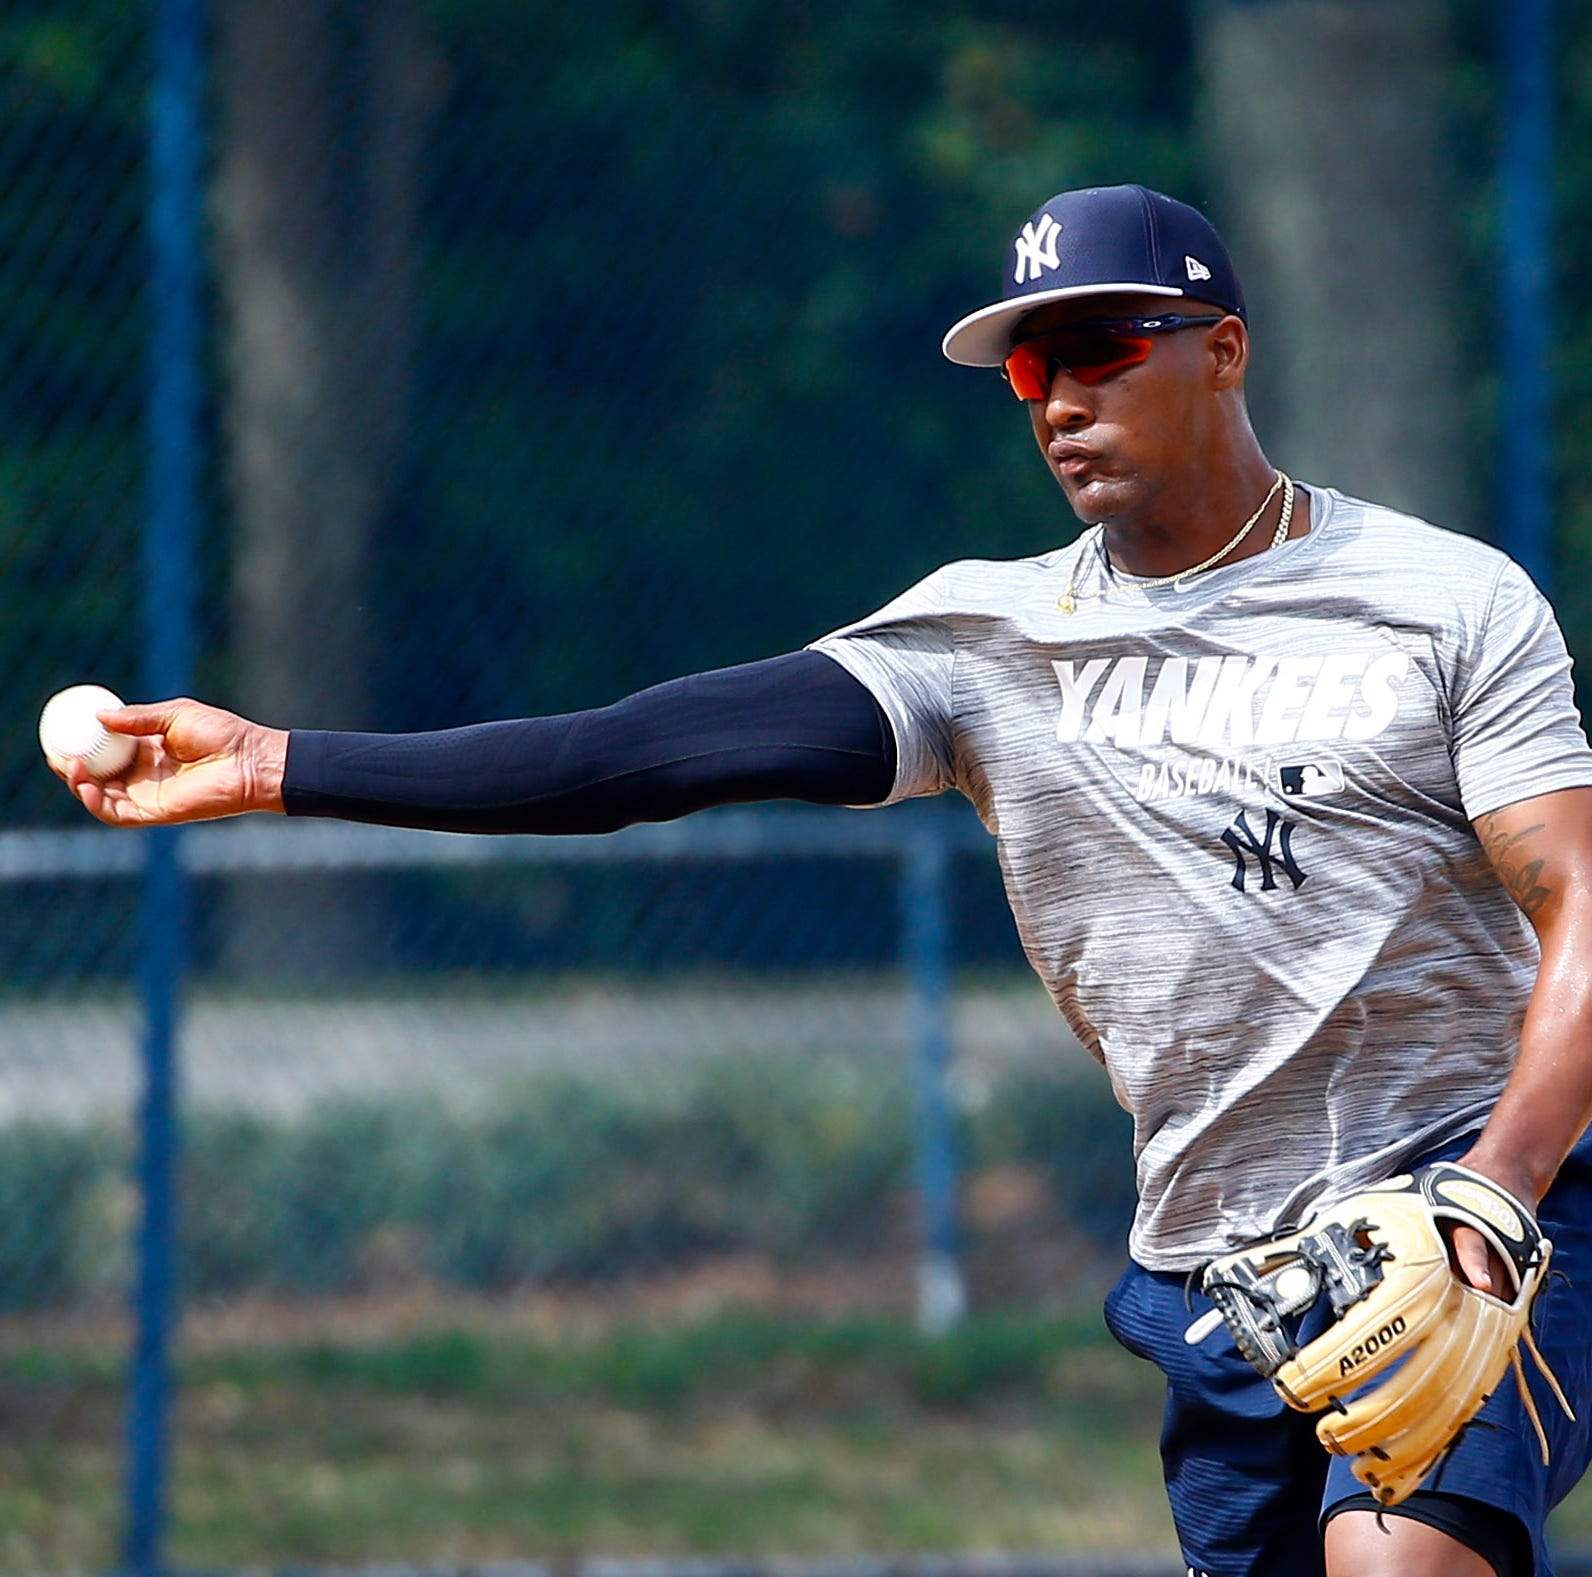 For Miguel Andujar, defense is a priority at Yankees spring training